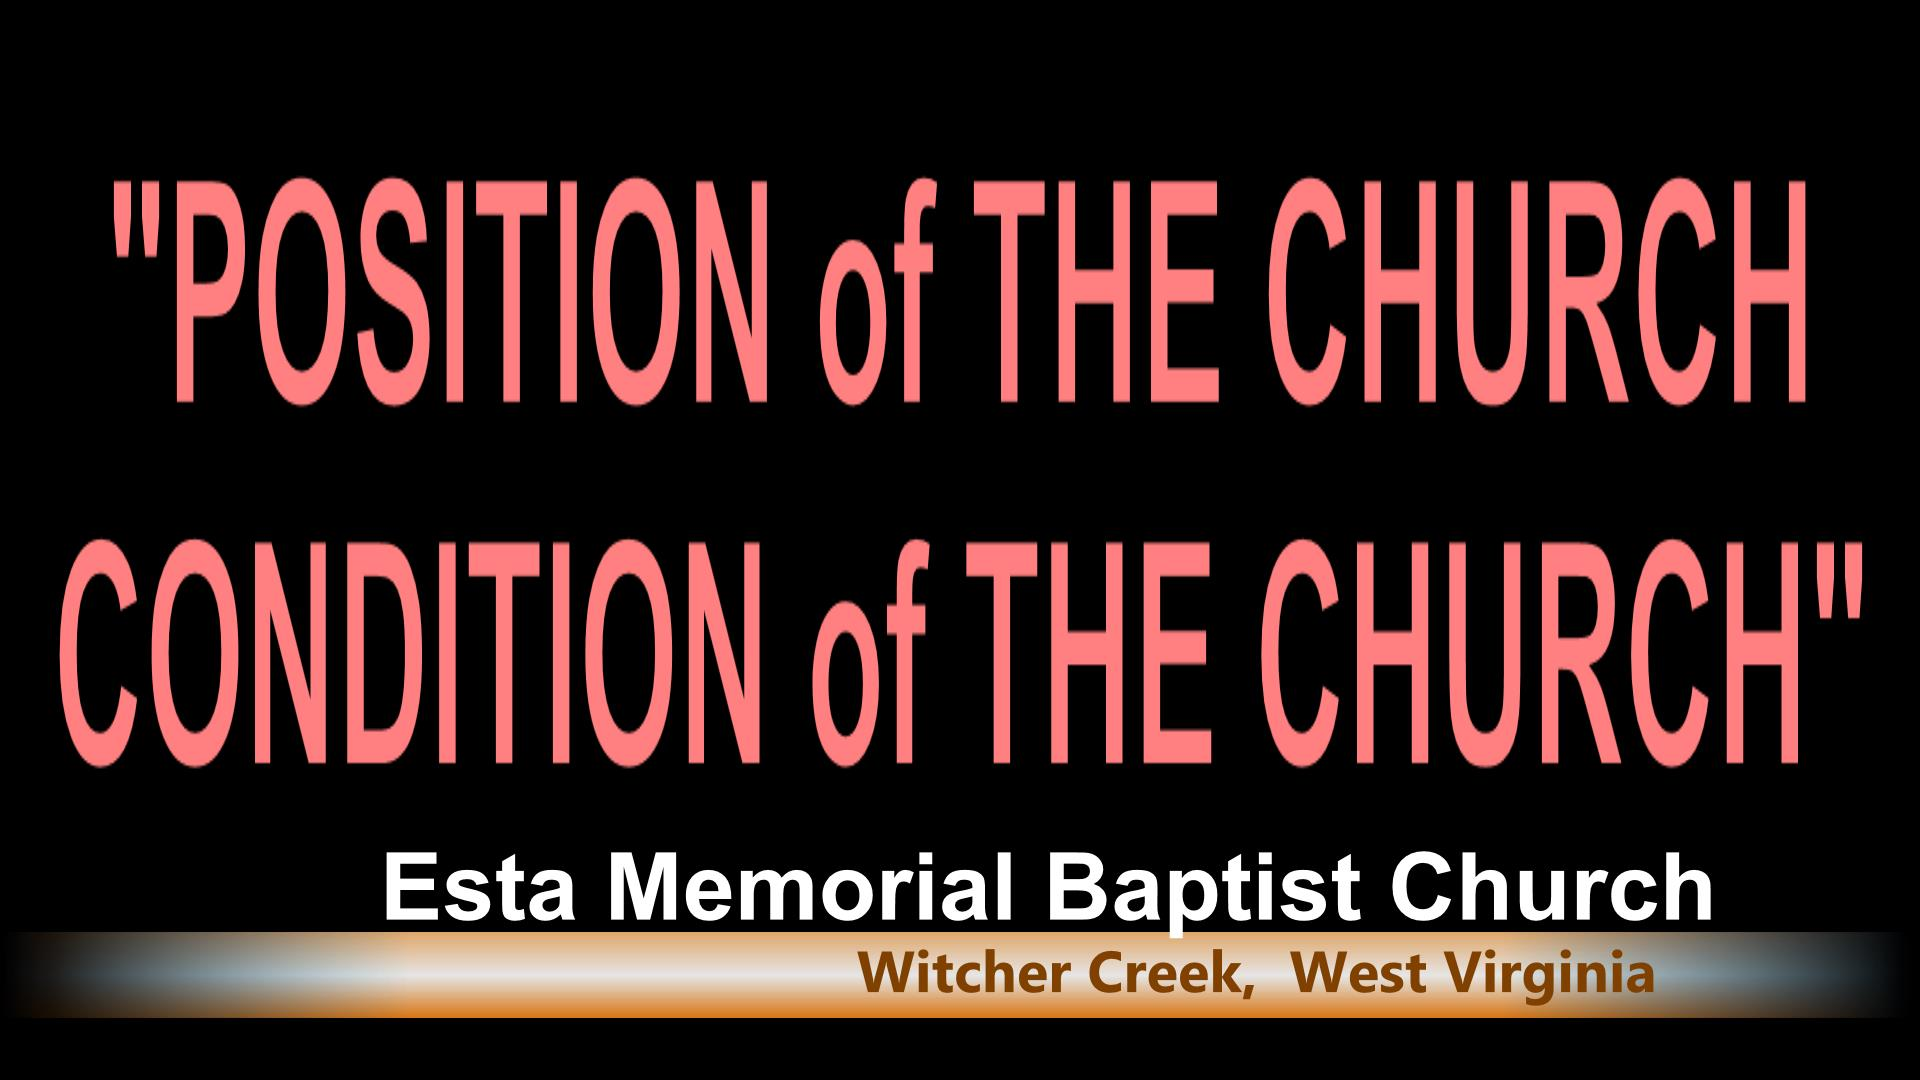 POSITION OF THE CHURCH  /  CONDITION OF THE C